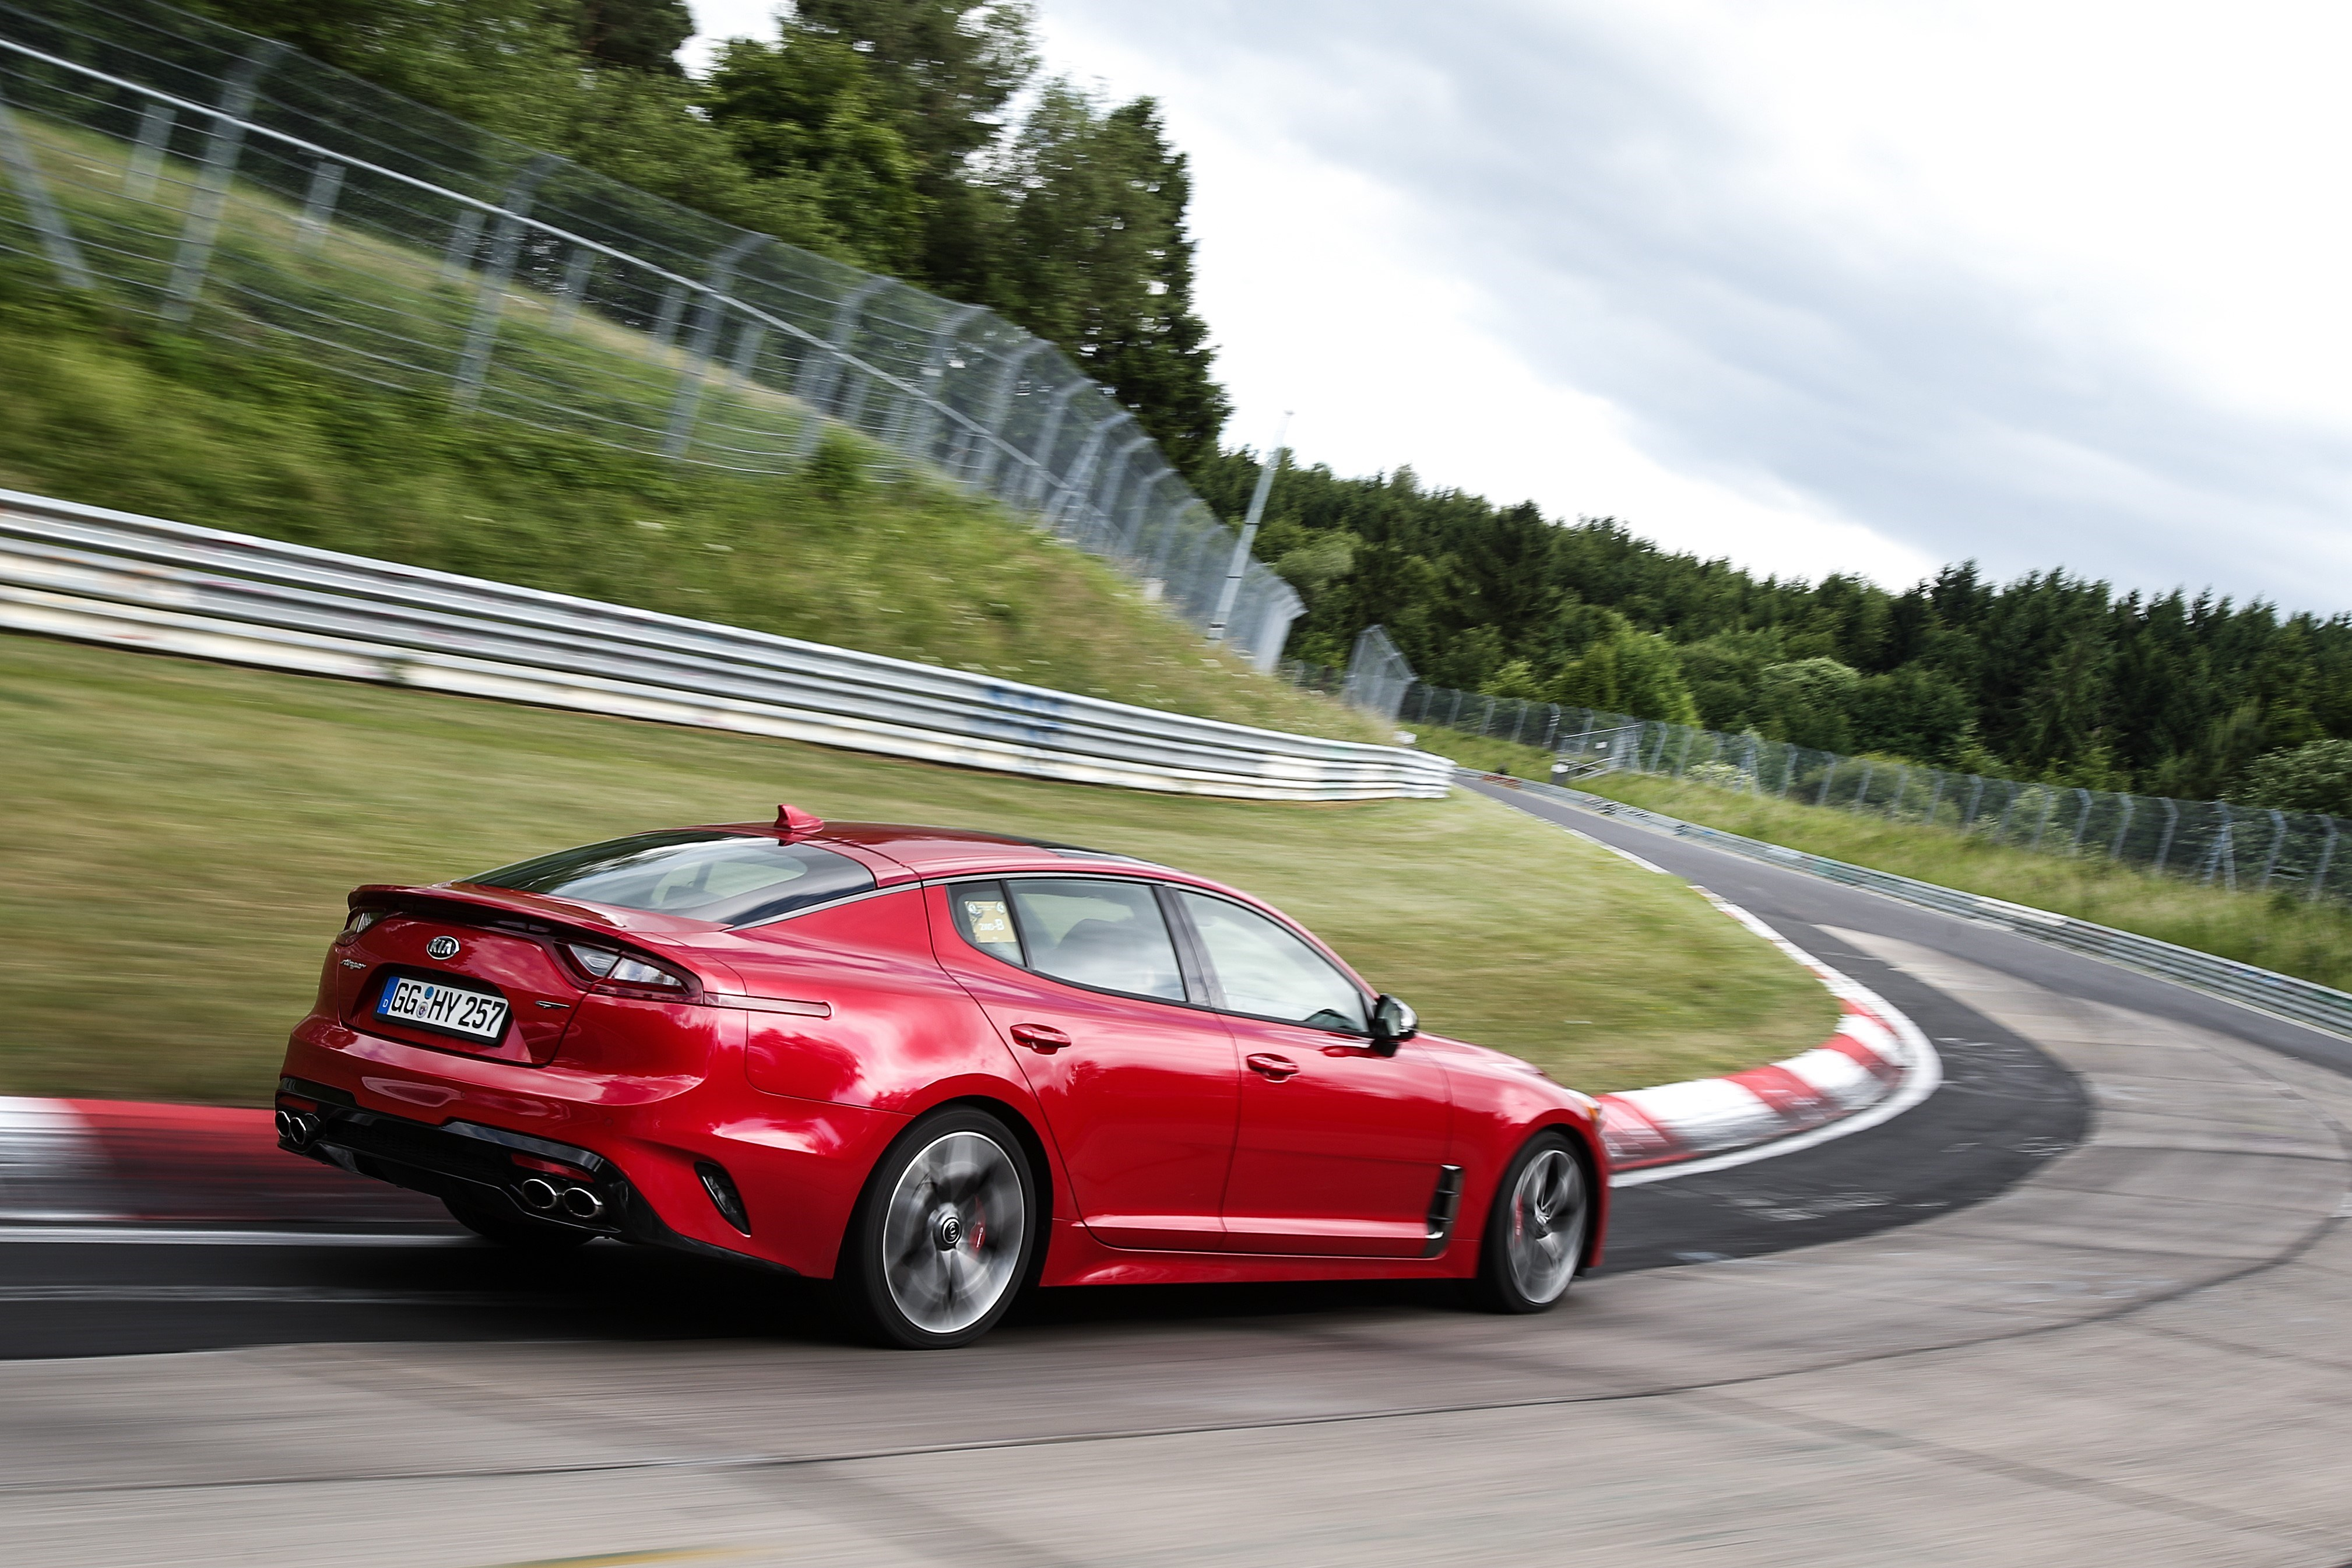 Kia Stinger Named Finalist for 2018 North American Car of the Year